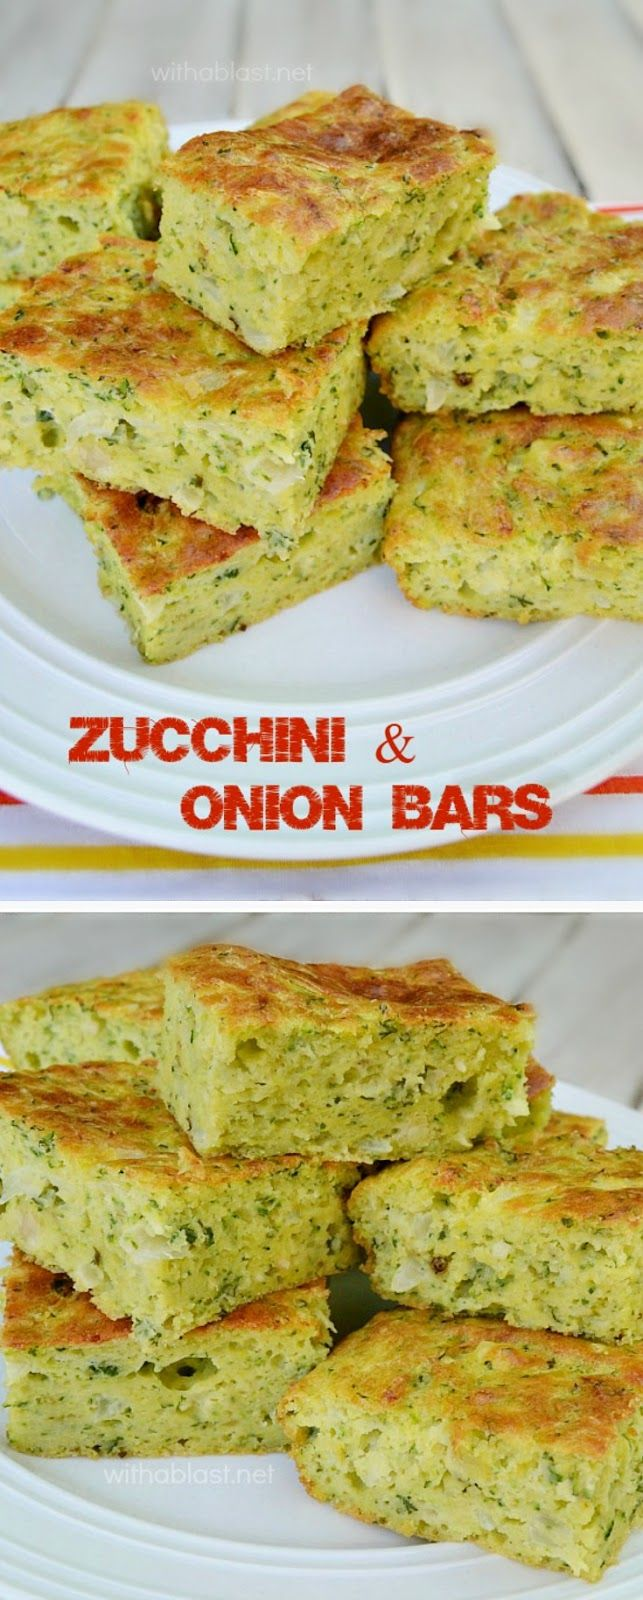 Easy, mix-n-bake recipe for Zucchini and Onion Bars ~ perfect for picnics, brunch, side dish or just a delicious quick savory snack {serve warm or cold}